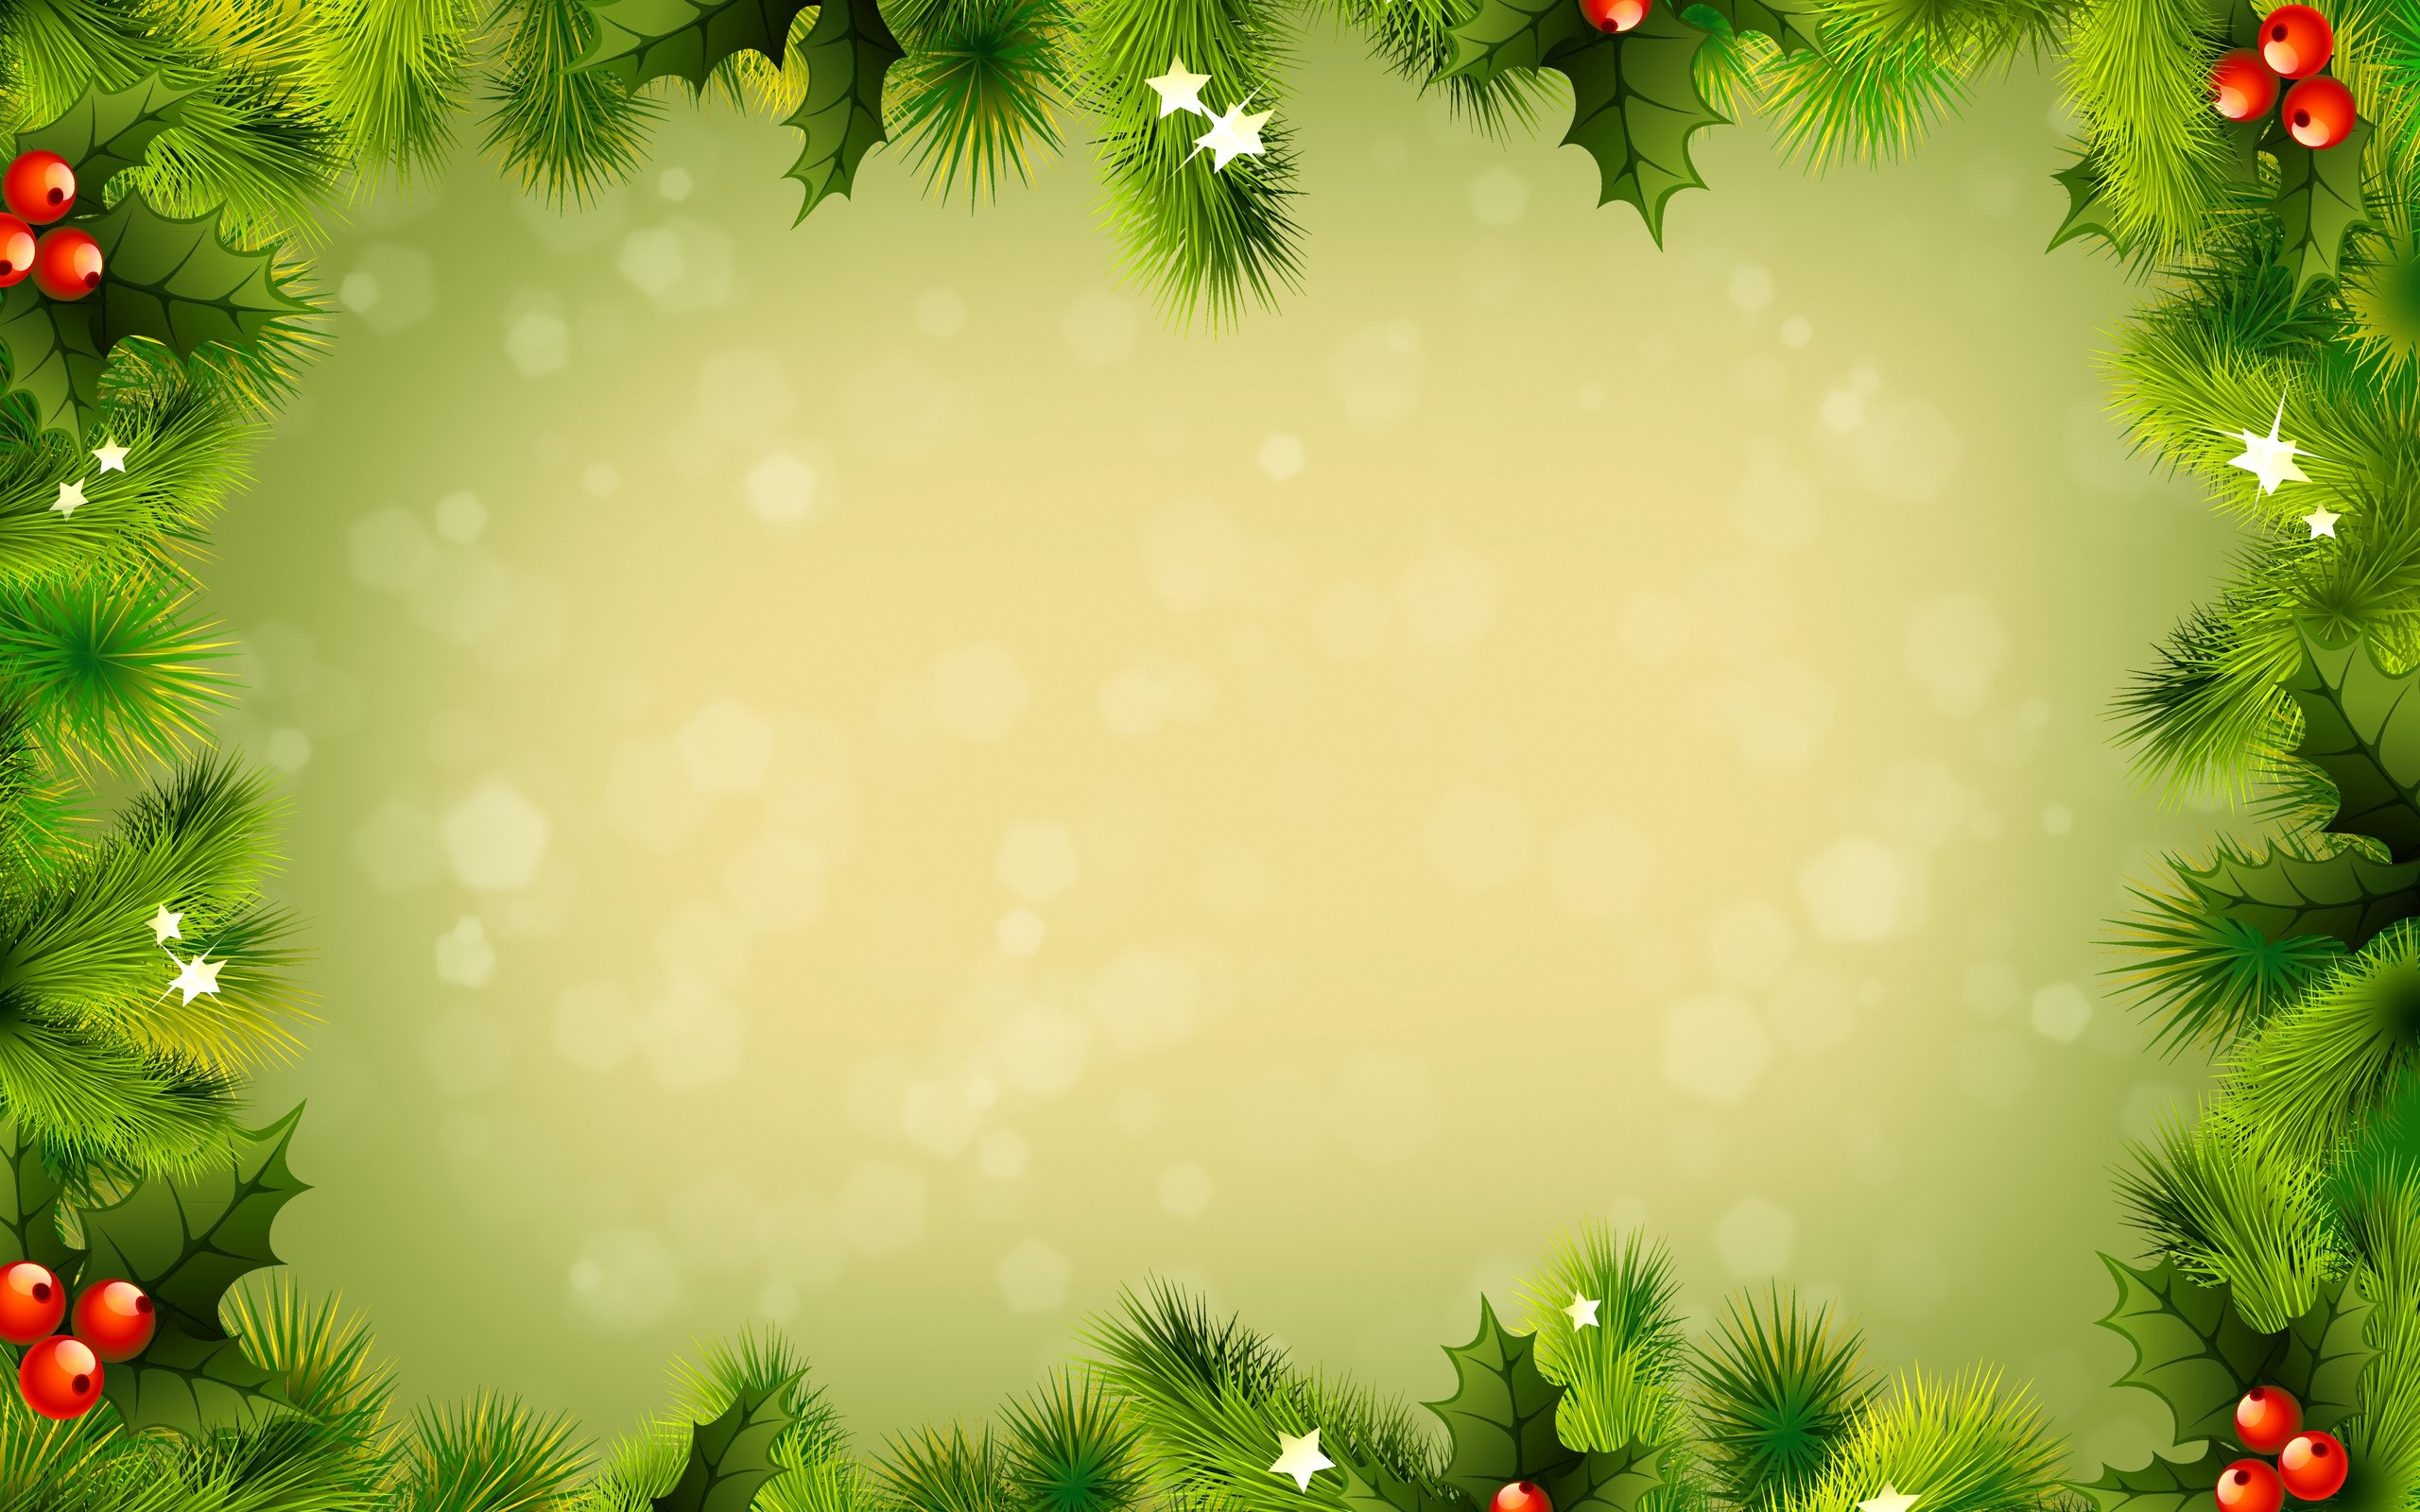 Green christmas decorations wallpaper 2560x1600